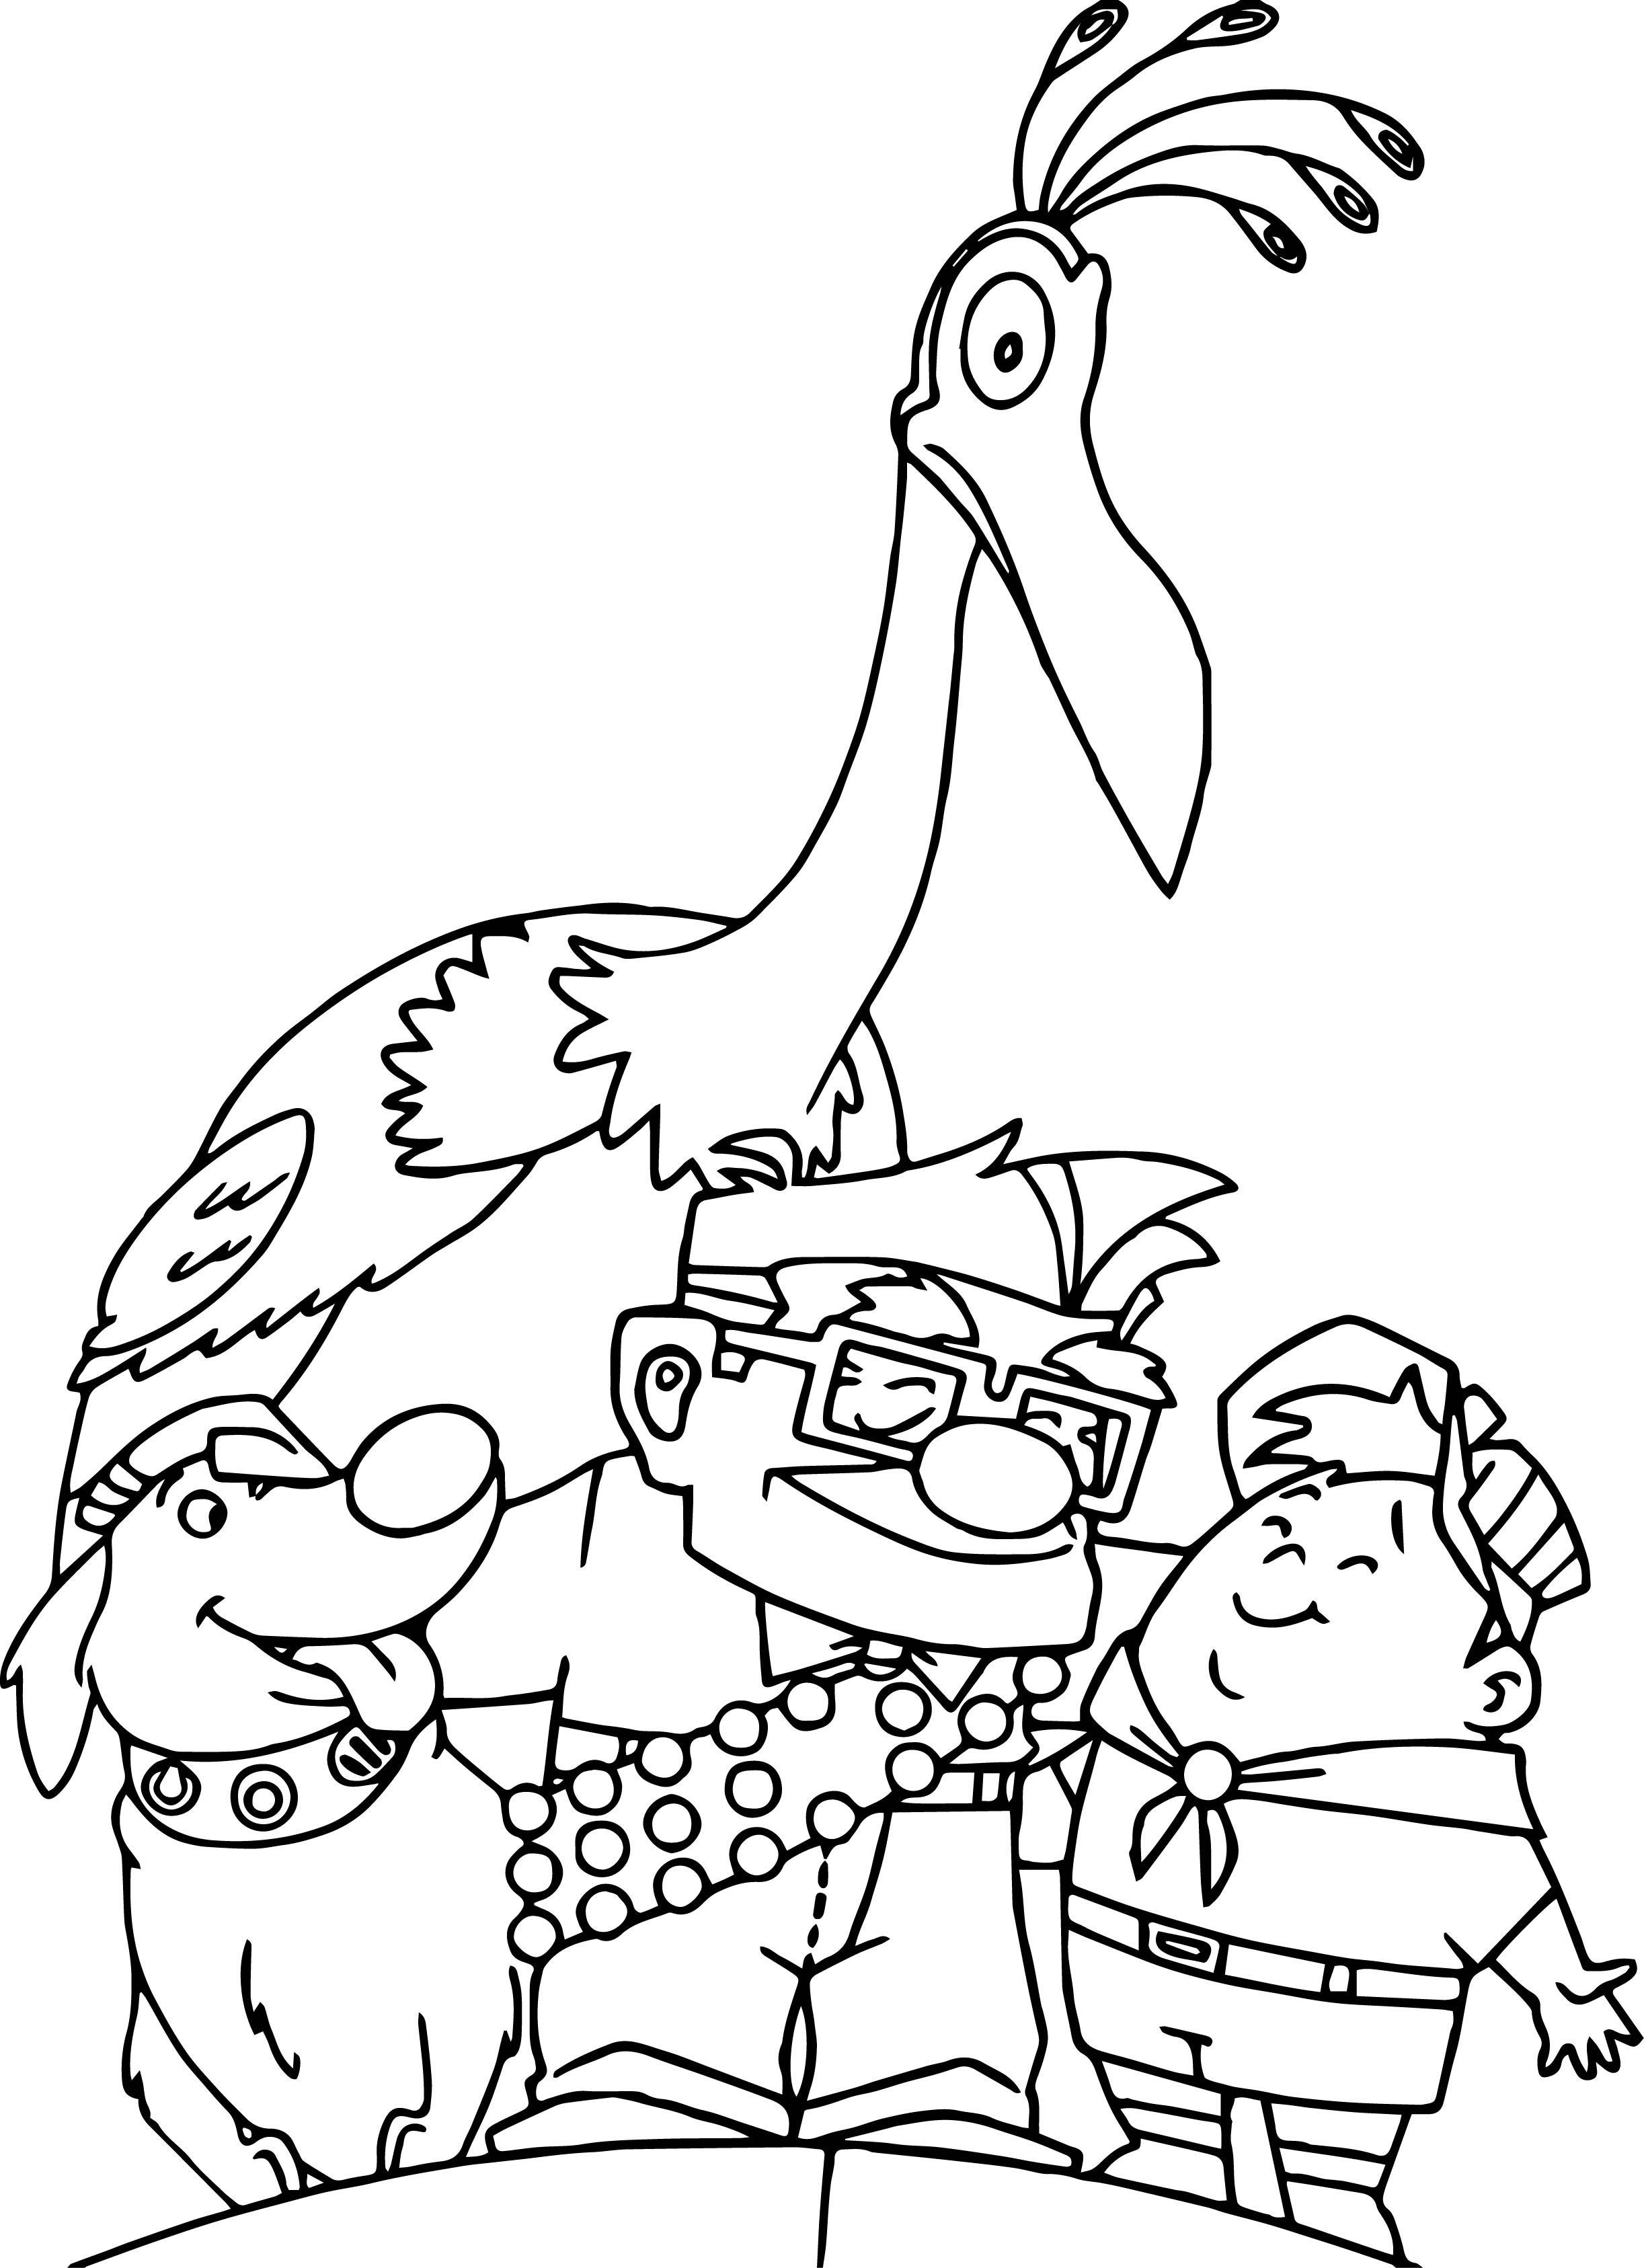 Disney Movie Up Coloring Pages Disney Movie Up Coloring Pages Disney Coloring Pages Disney Coloring Sheets Cartoon Coloring Pages